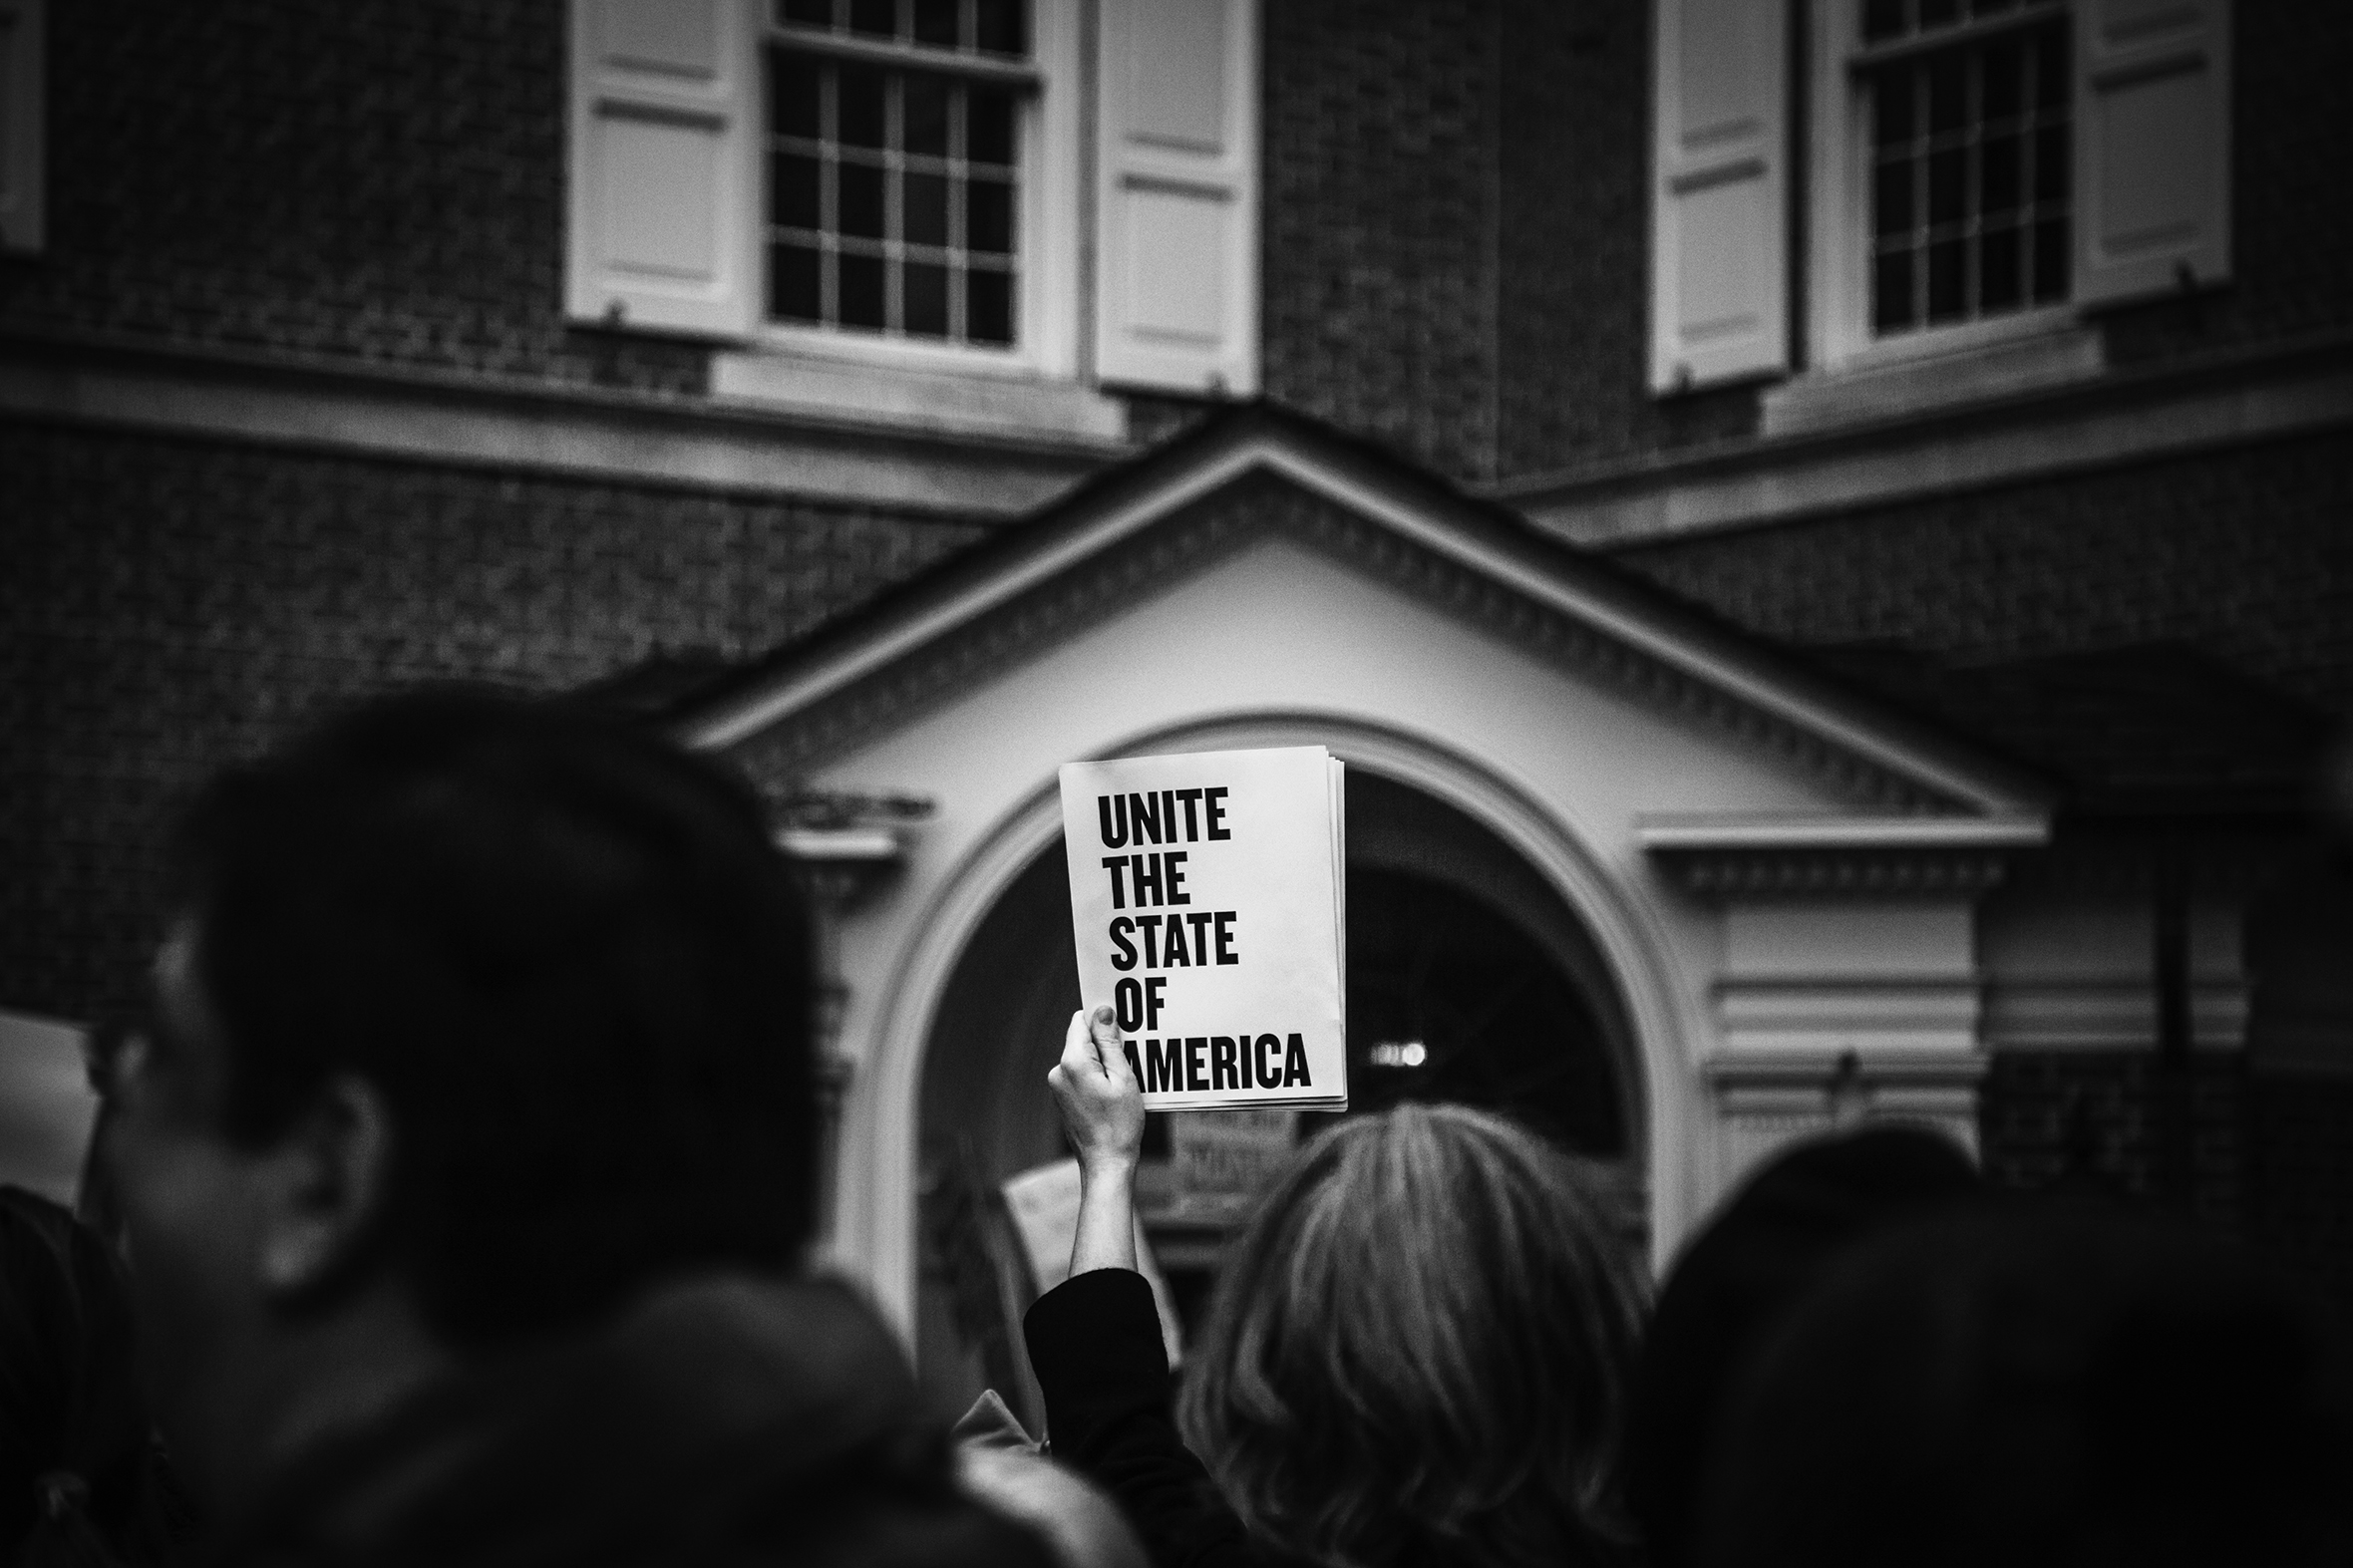 A crowd of protestors is in front of a building. The camera is focused on one sign that stands out and says Unite The State Of America.